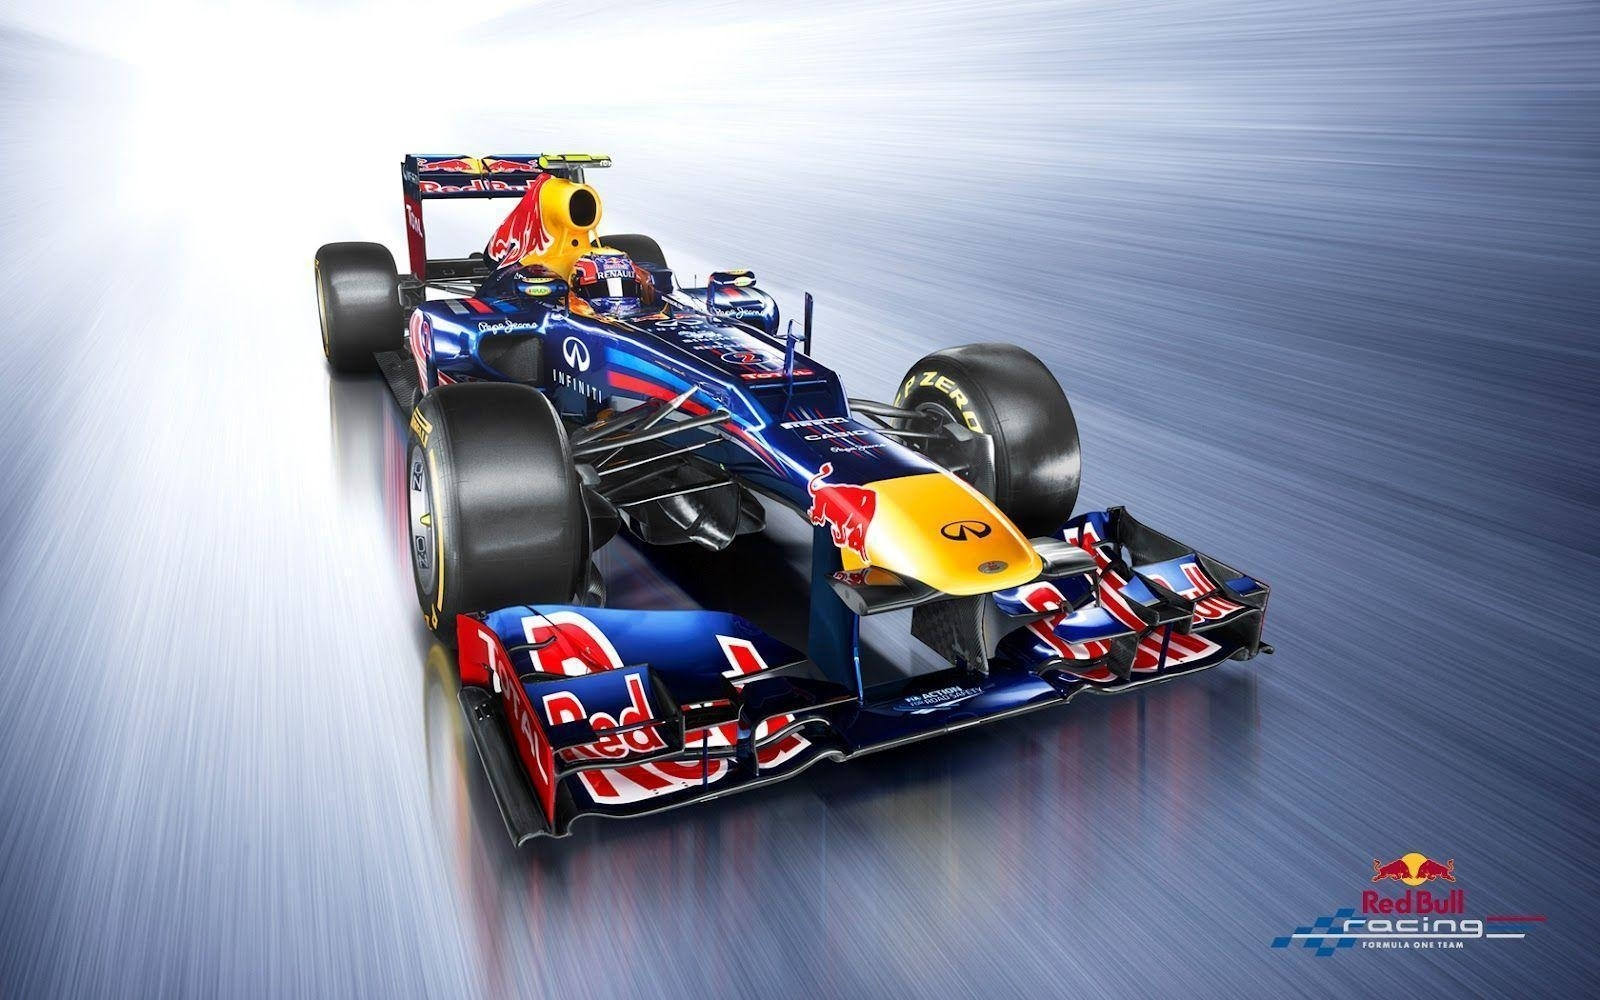 red bull racing wallpapers - wallpaper cave